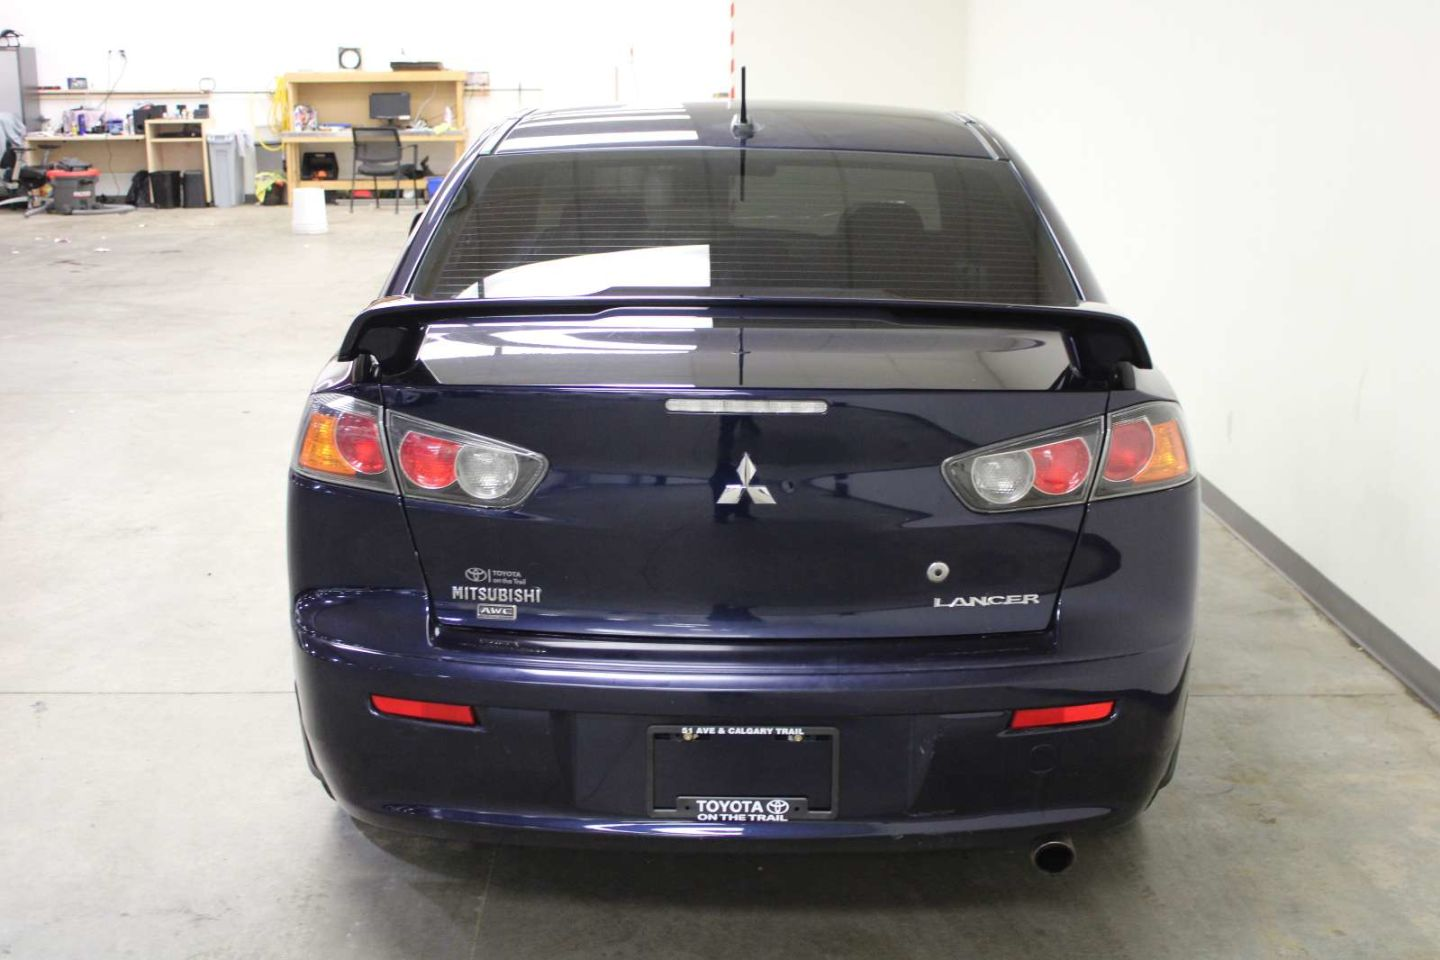 2014 Mitsubishi Lancer GT for sale in Edmonton, Alberta